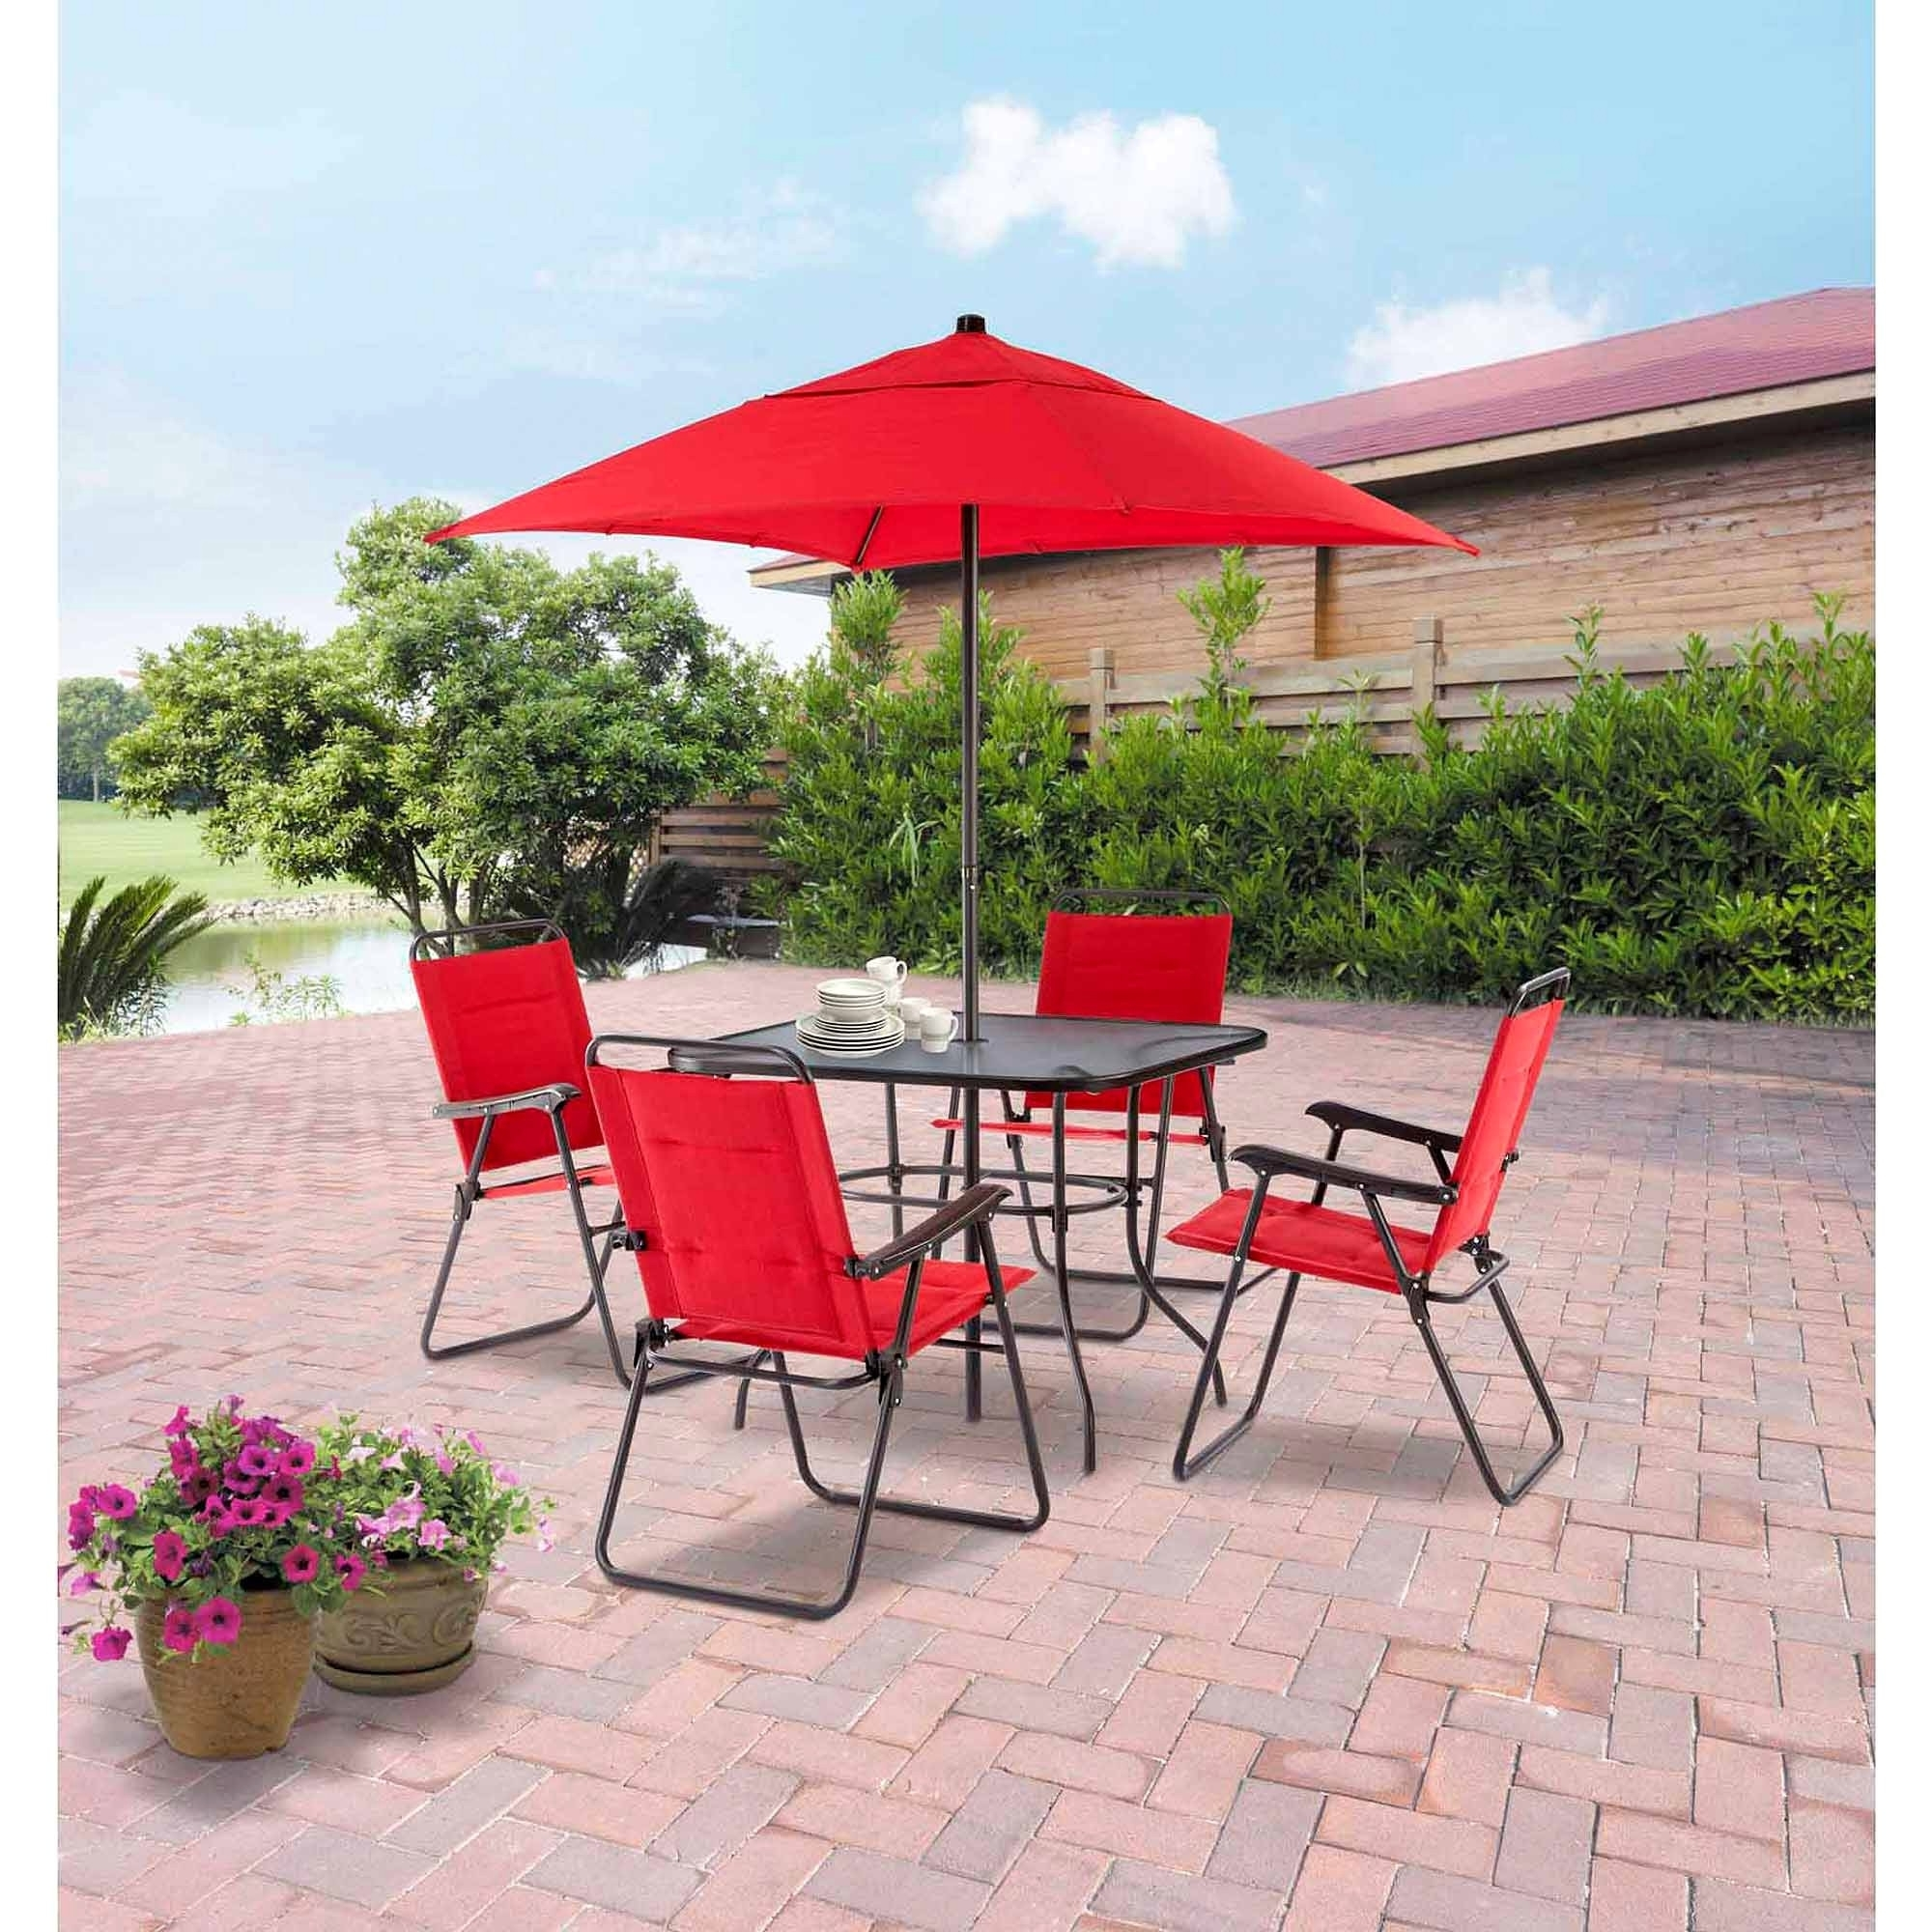 Outdoor Umbrella Aldi Unique 30 Luxury Walmart Patio Umbrellas With Regard To Recent Walmart Patio Umbrellas (View 4 of 20)